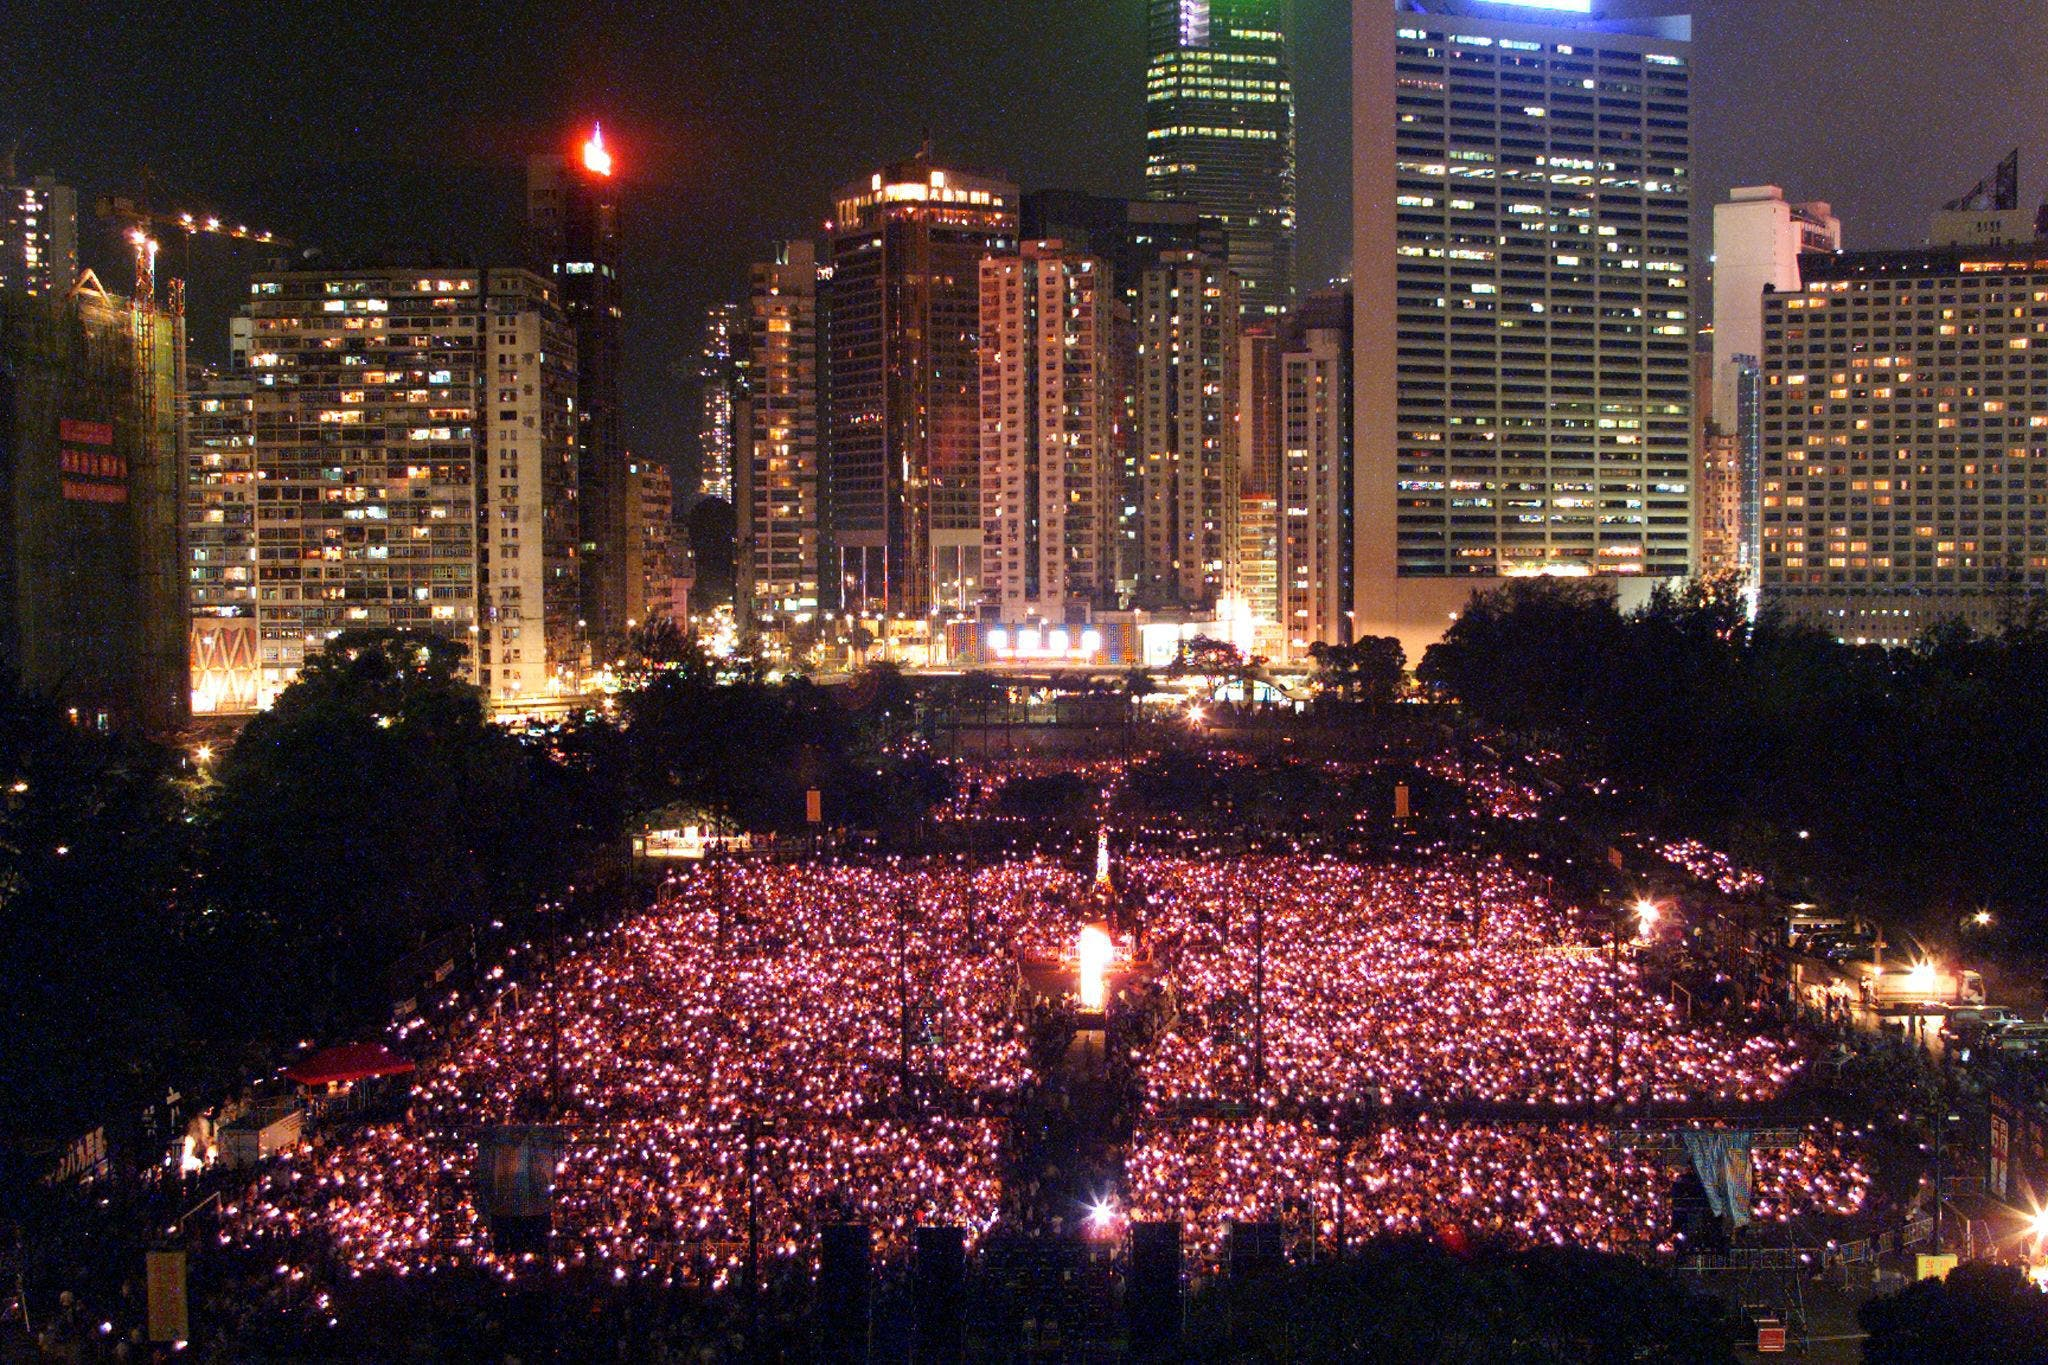 From the Tiananmen Revival in Hong Kong 1999